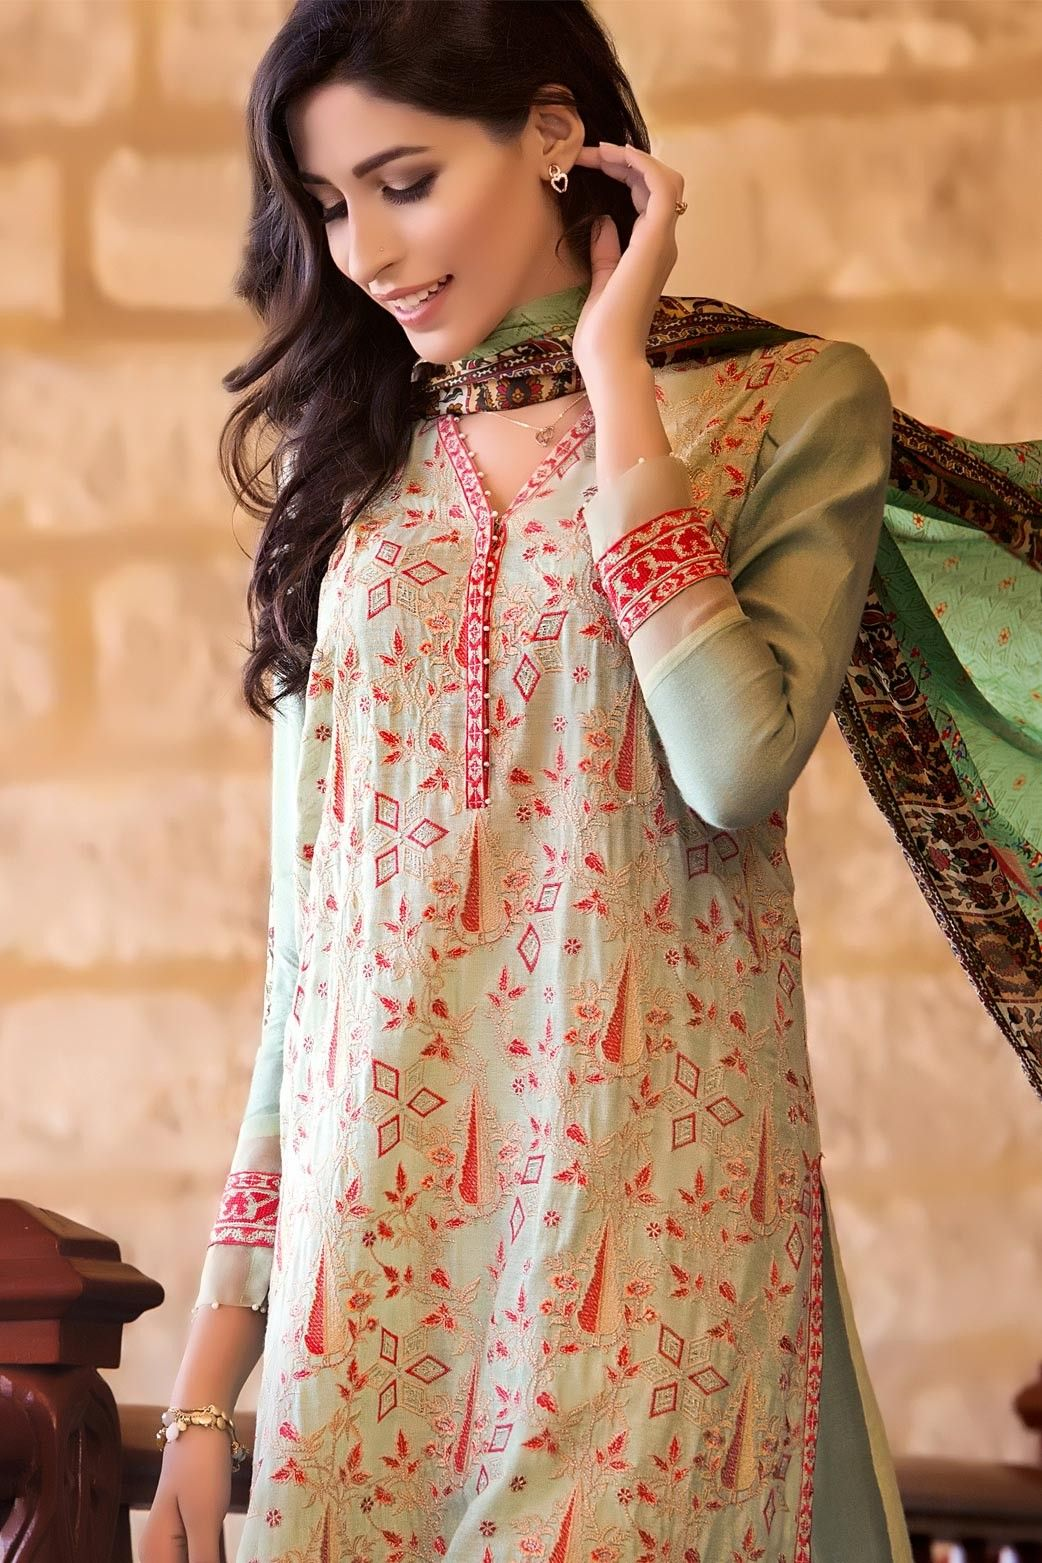 d306d4984e Classy 3 piece semi formally luxury luxe Zeen Cambridge Green Lily  Pakistani Dress Collection 2017 online shopping Unstitched Pret Wear  #wintercollection ...